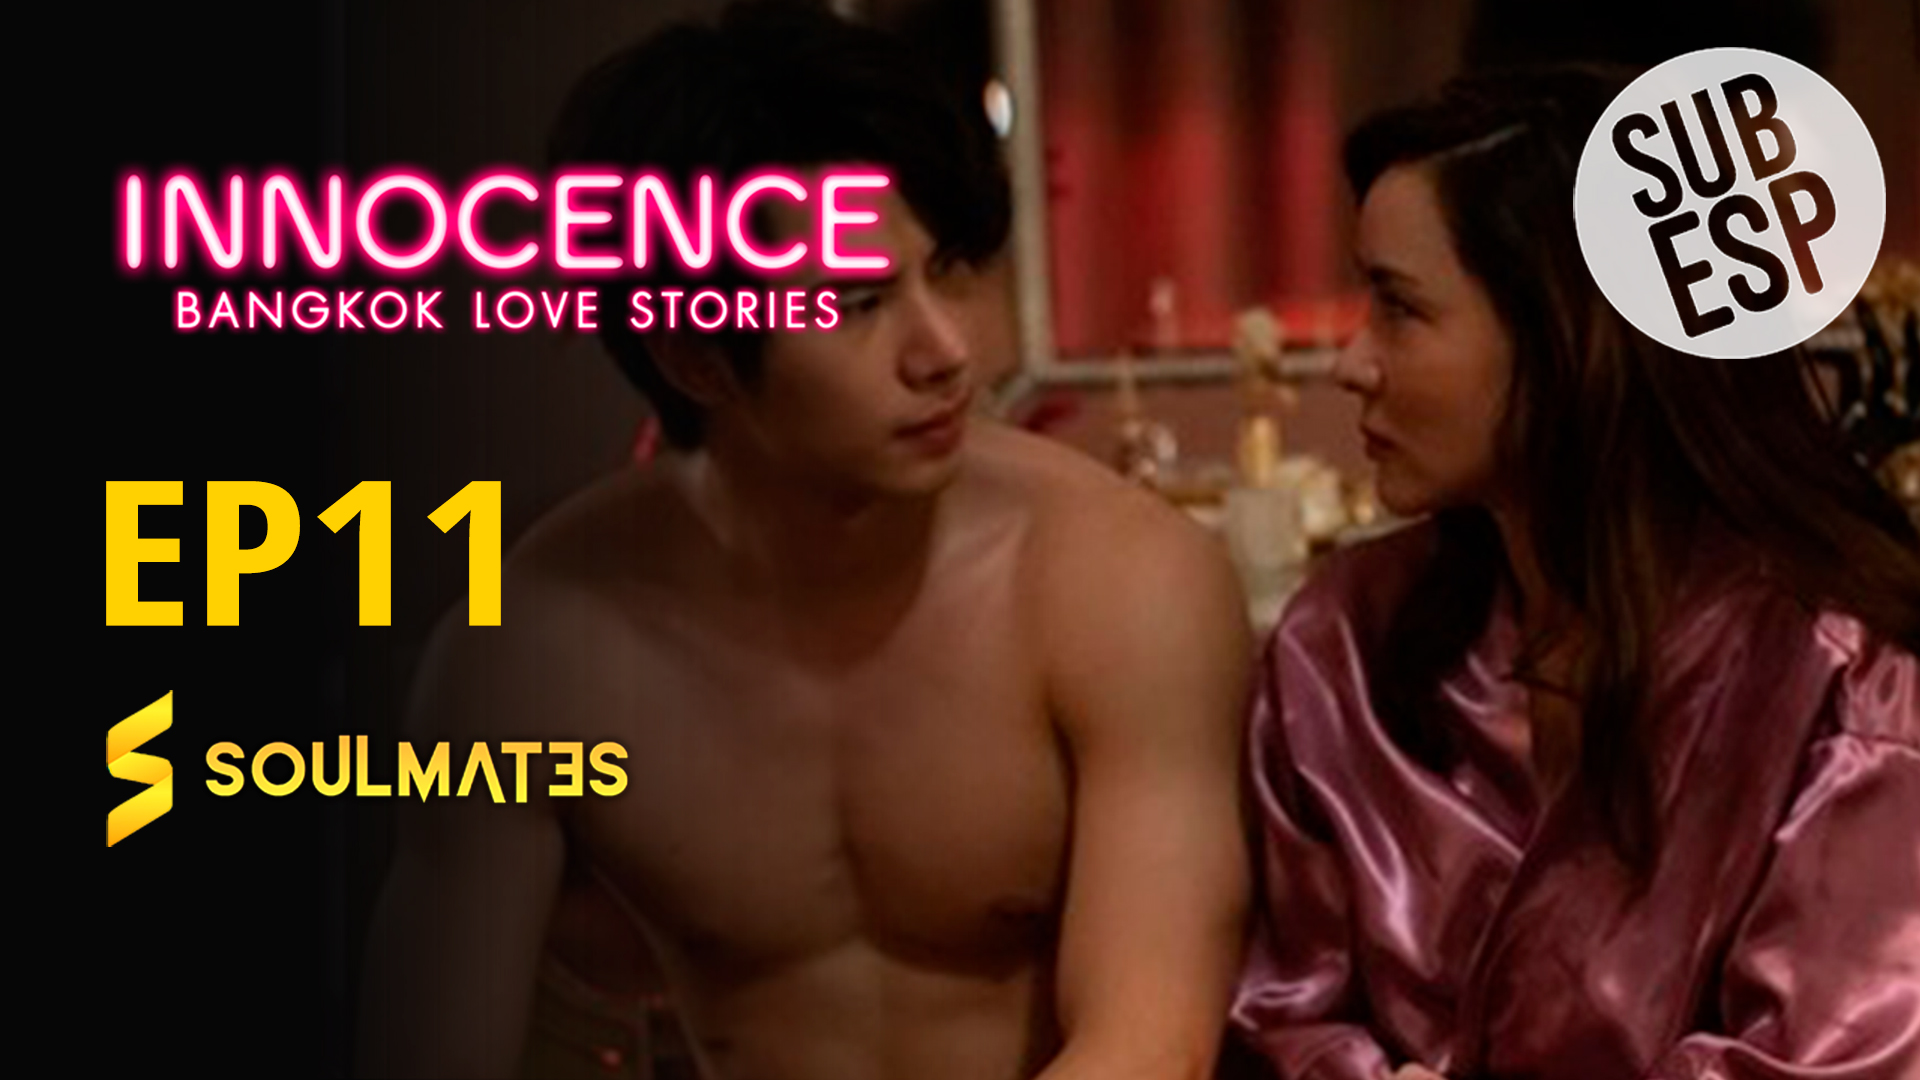 Bangkok Love Stories 2 Innocence : 1×11